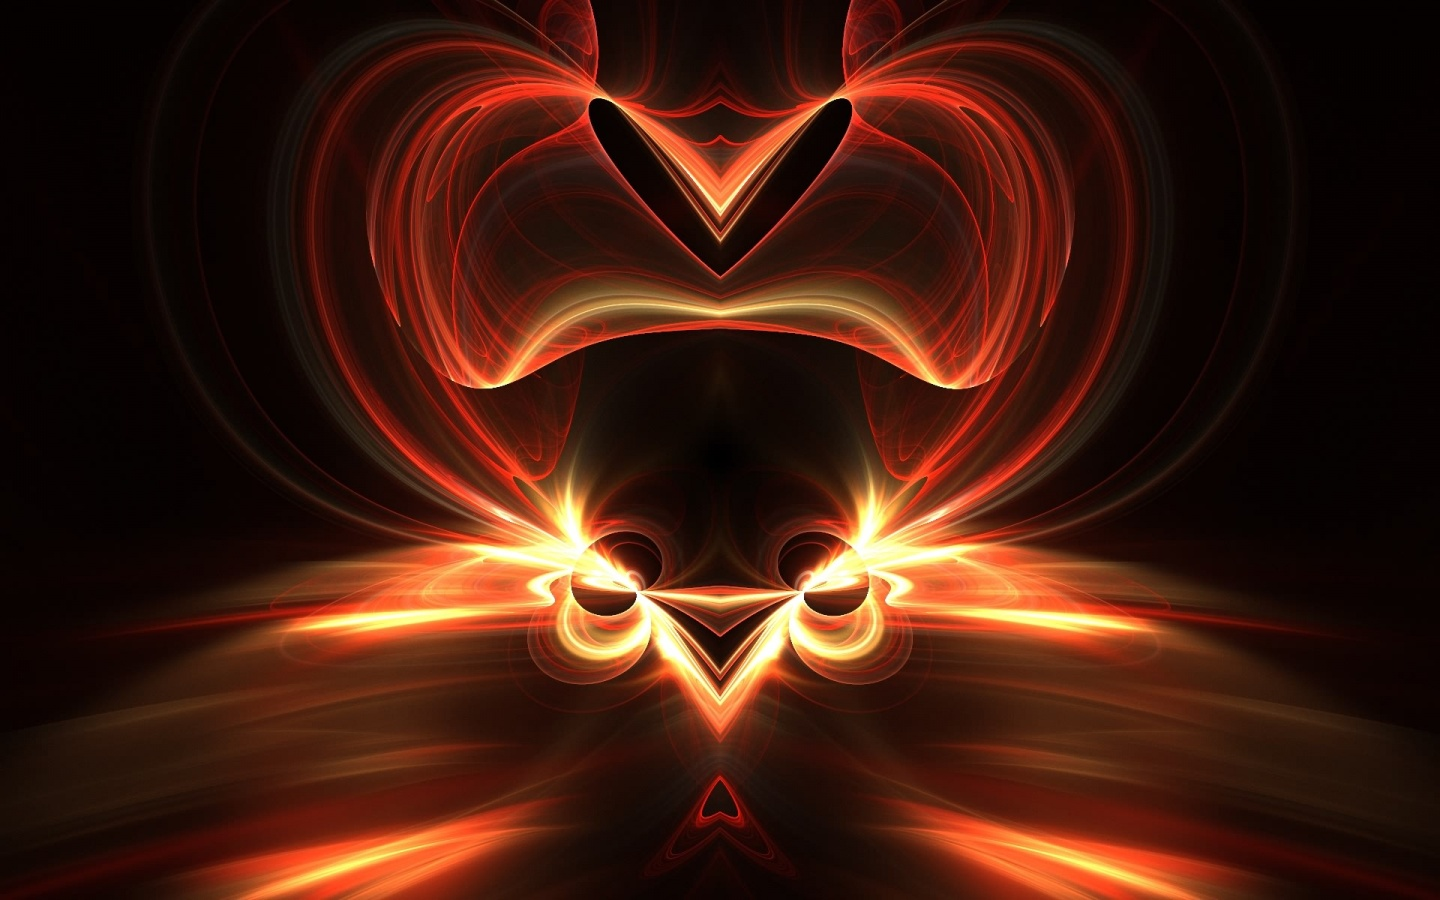 Fire heart love hd clipart - ClipartFox